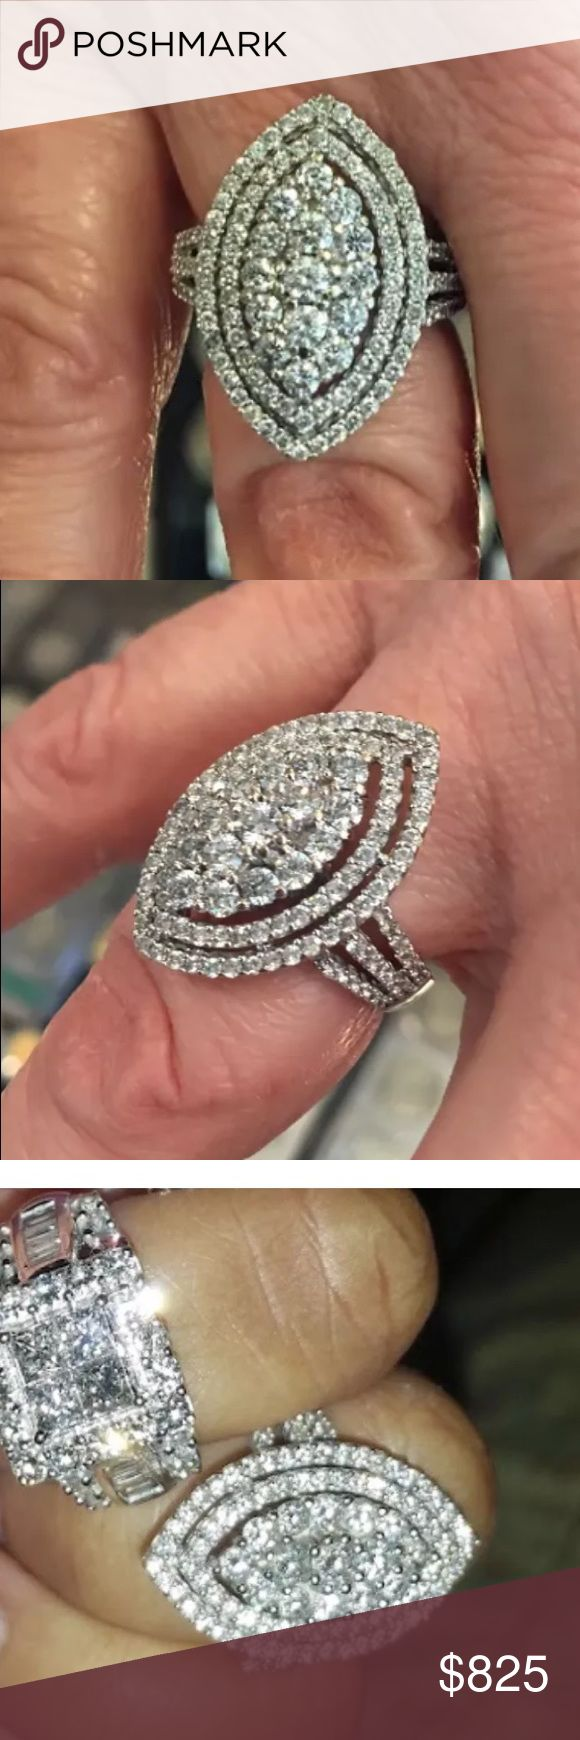 2 carat 10k white gold diamond pear shape ring 2 carat 10k white gold diamond pear shape ring! Tons of sparkle!!!! This is a steal!!! Jewelry Rings